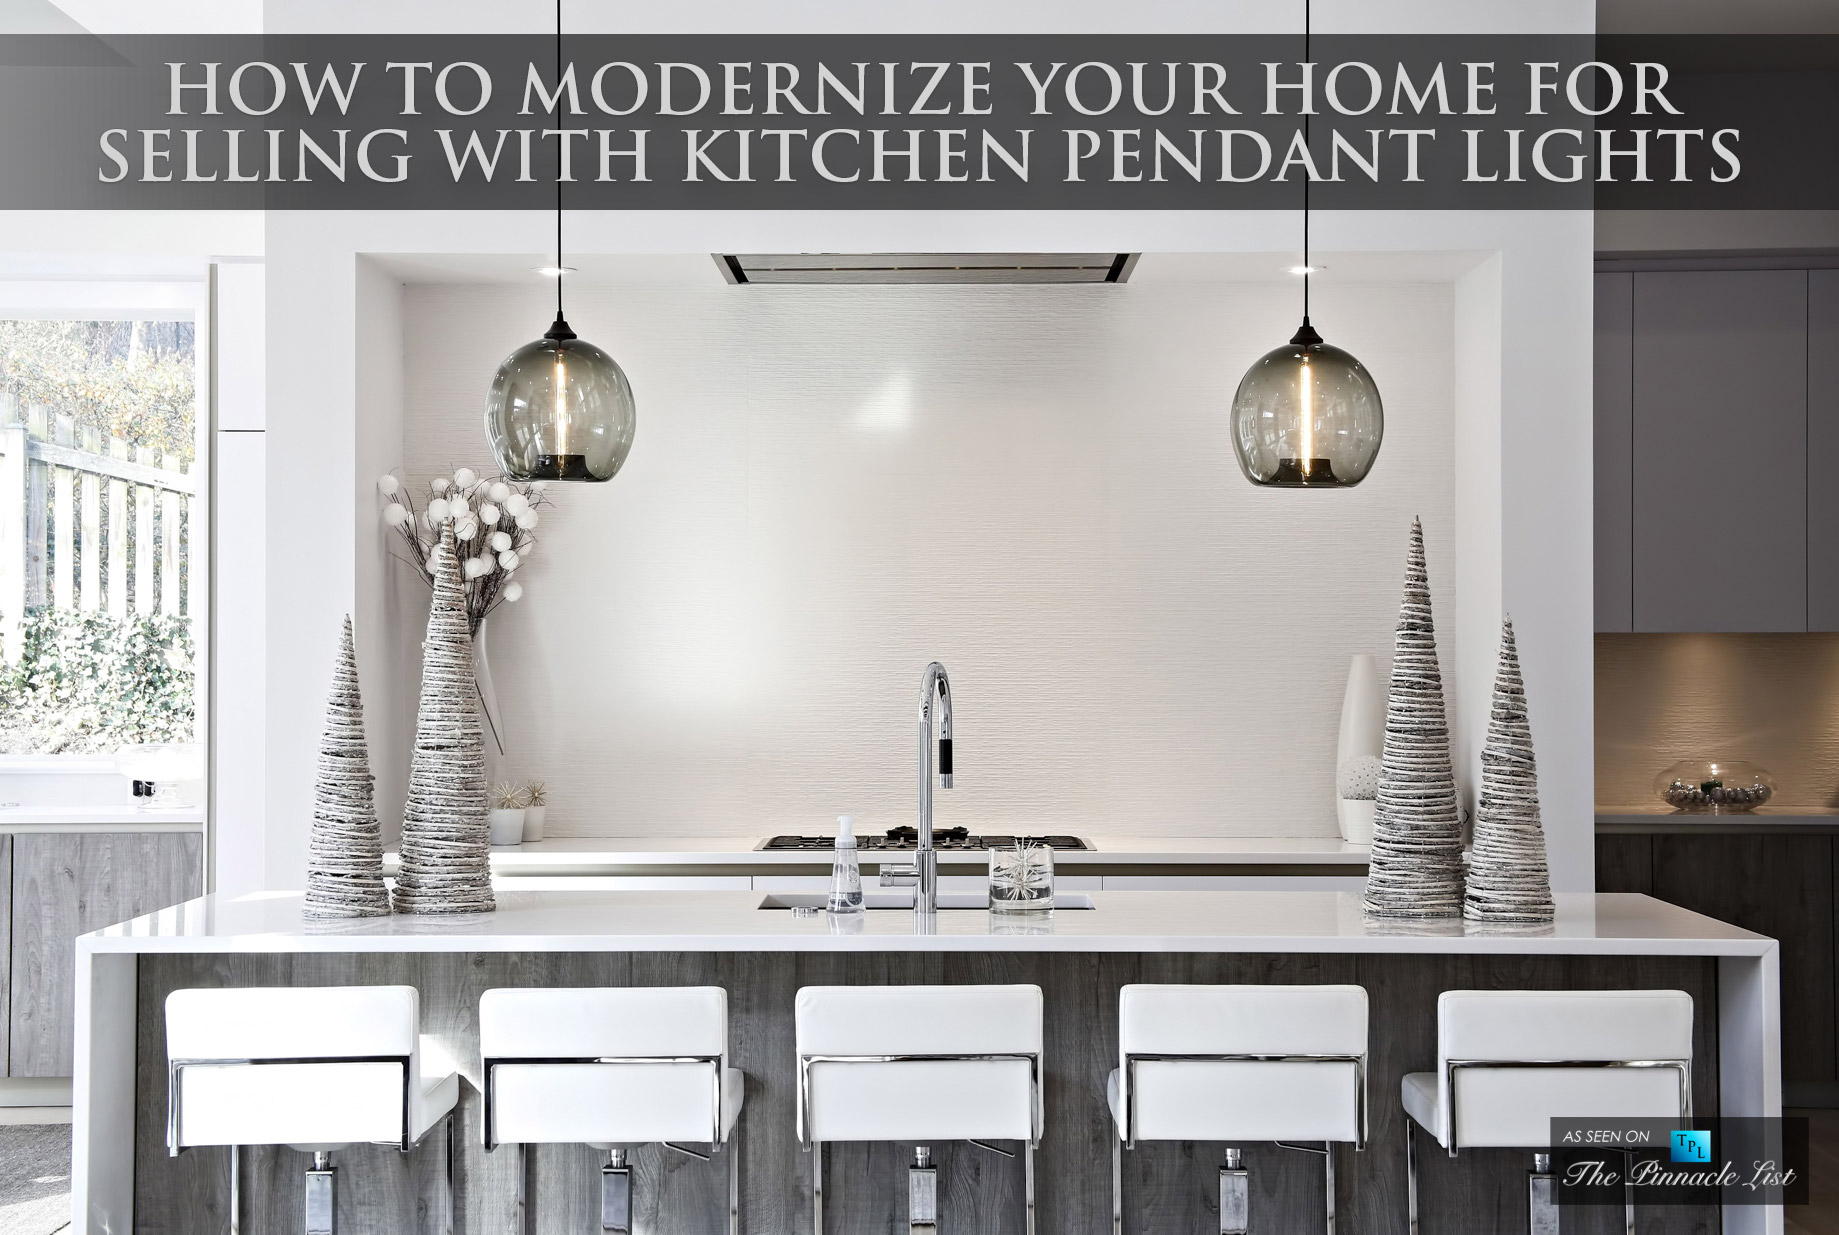 How To Modernize Your Home For Selling With Kitchen Pendant Lights The Pinnacle List